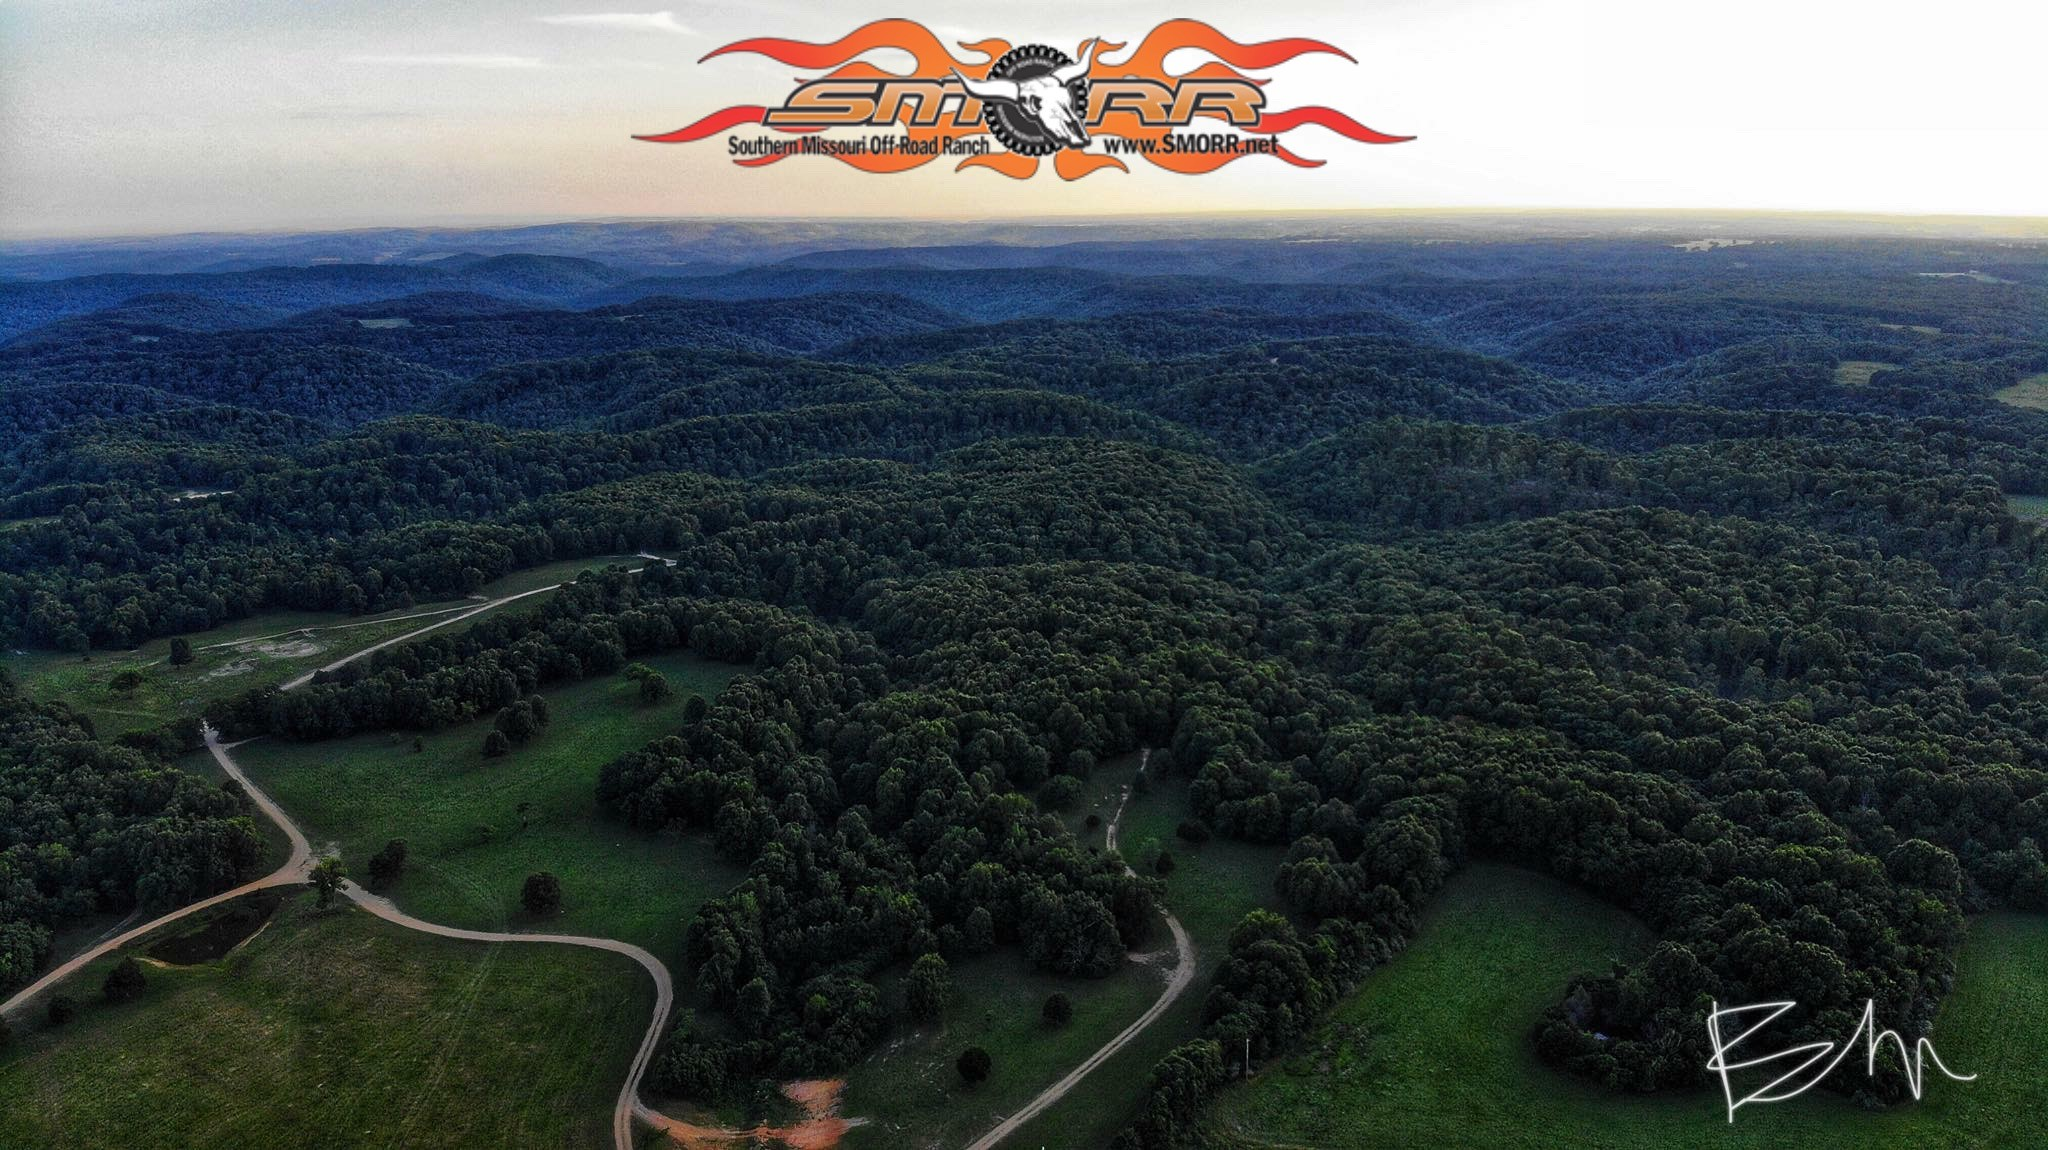 SOUTHERN MISSOURI OFF-ROAD RANCH - SMORR - SEYMOUR, MO   The Ranch is located about 5 miles south of Seymour, MO on HWY K. Contained within our 940+ acres of terrain are miles of fantastic trails ranging from level 1 easy to level 6 hardcore. There's something for everyone here! New trails are being cut and added frequently.